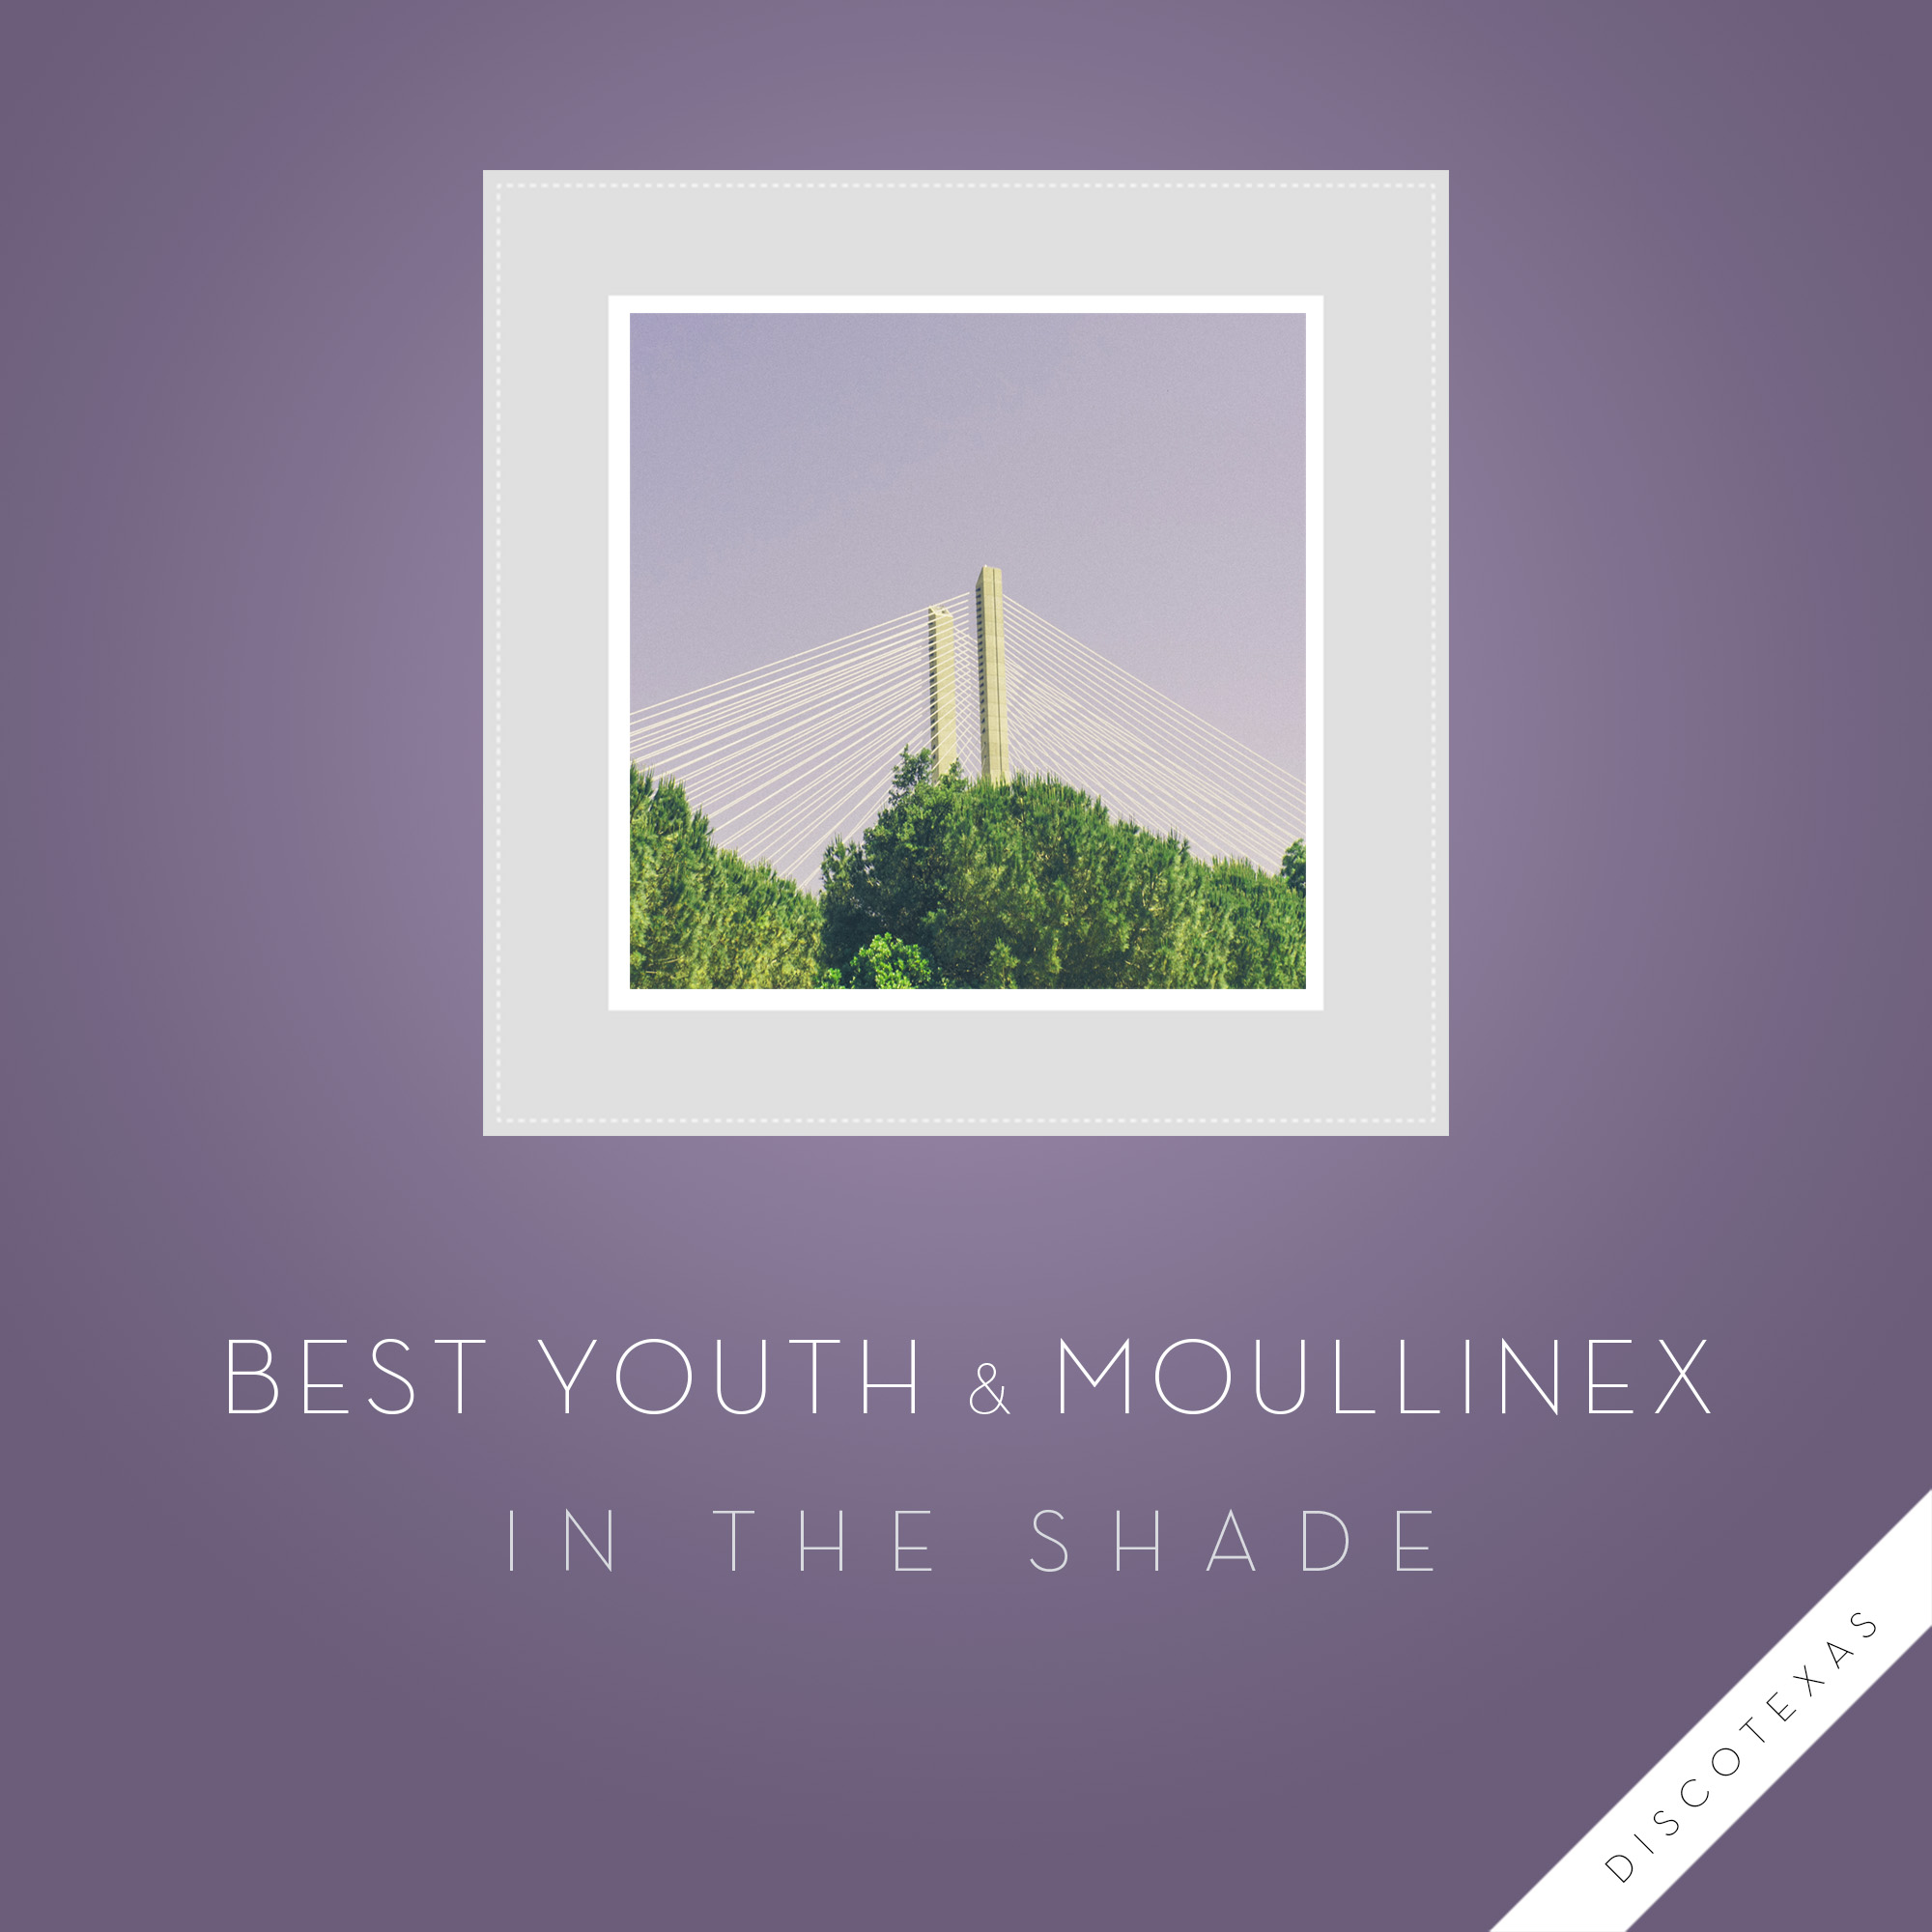 DT048: Best Youth & Moullinex - In The Shade